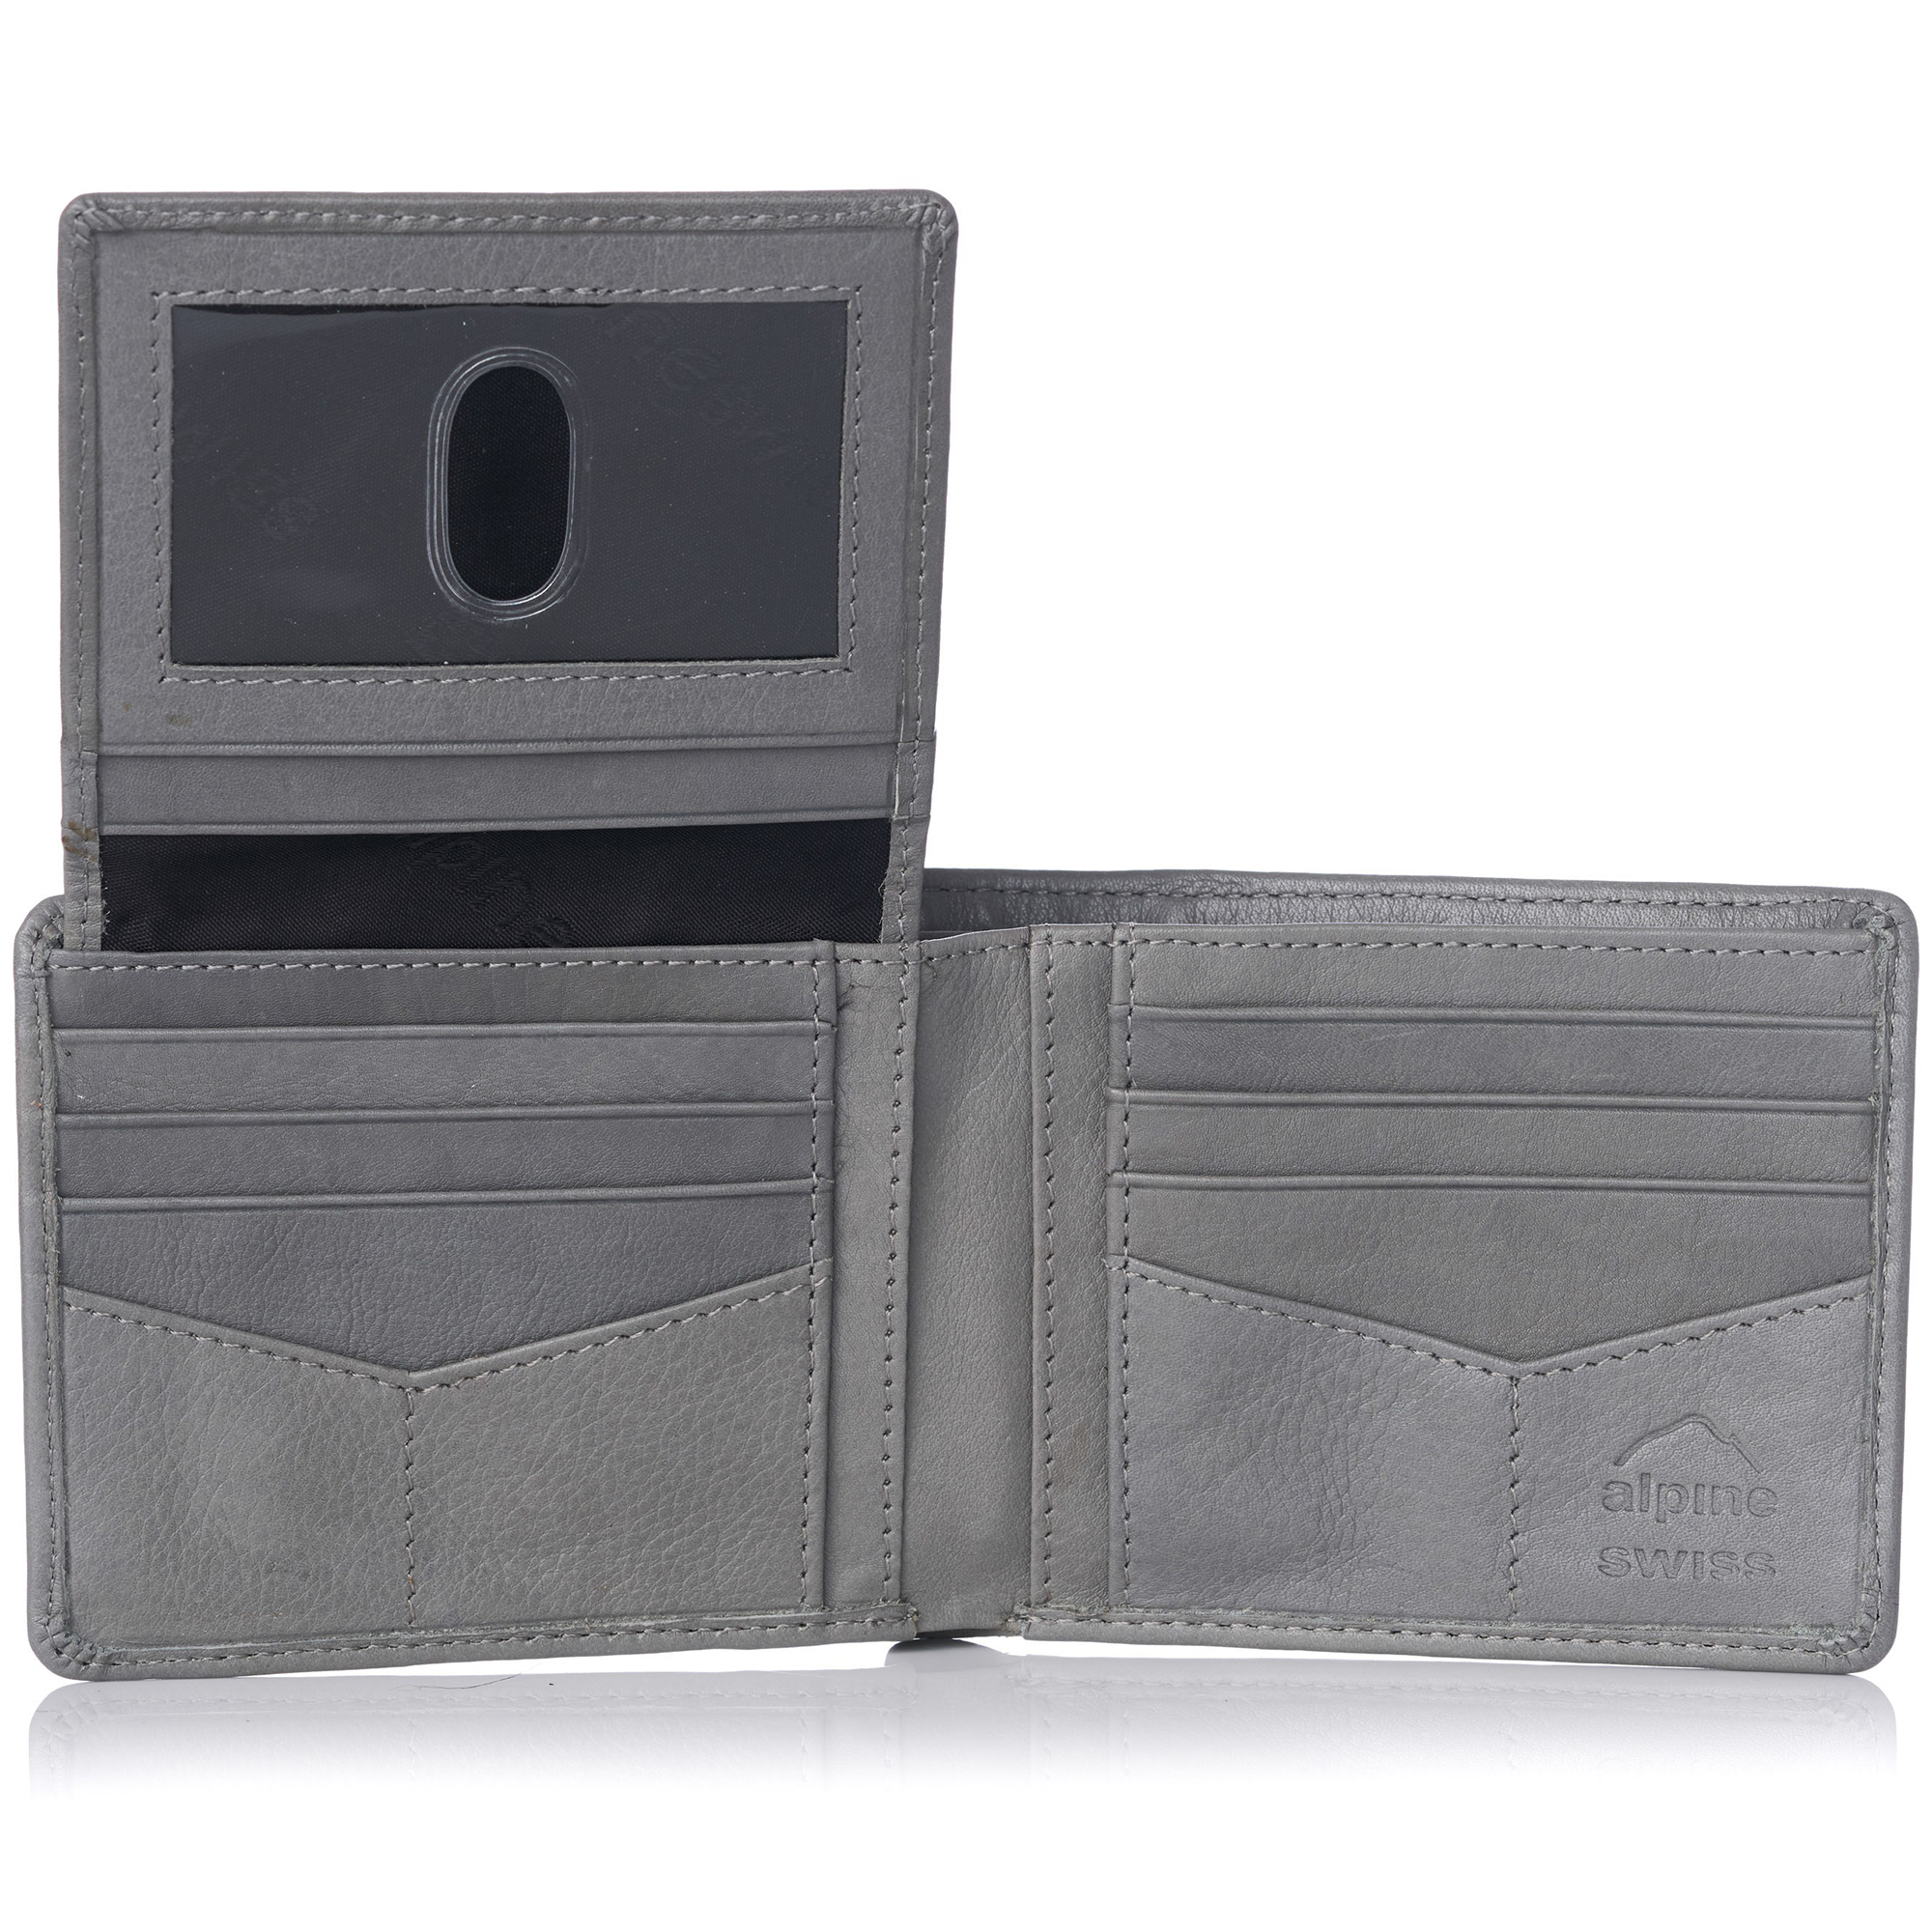 miniature 110 - Alpine-Swiss-RFID-Mens-Wallet-Deluxe-Capacity-Passcase-Bifold-Two-Bill-Sections